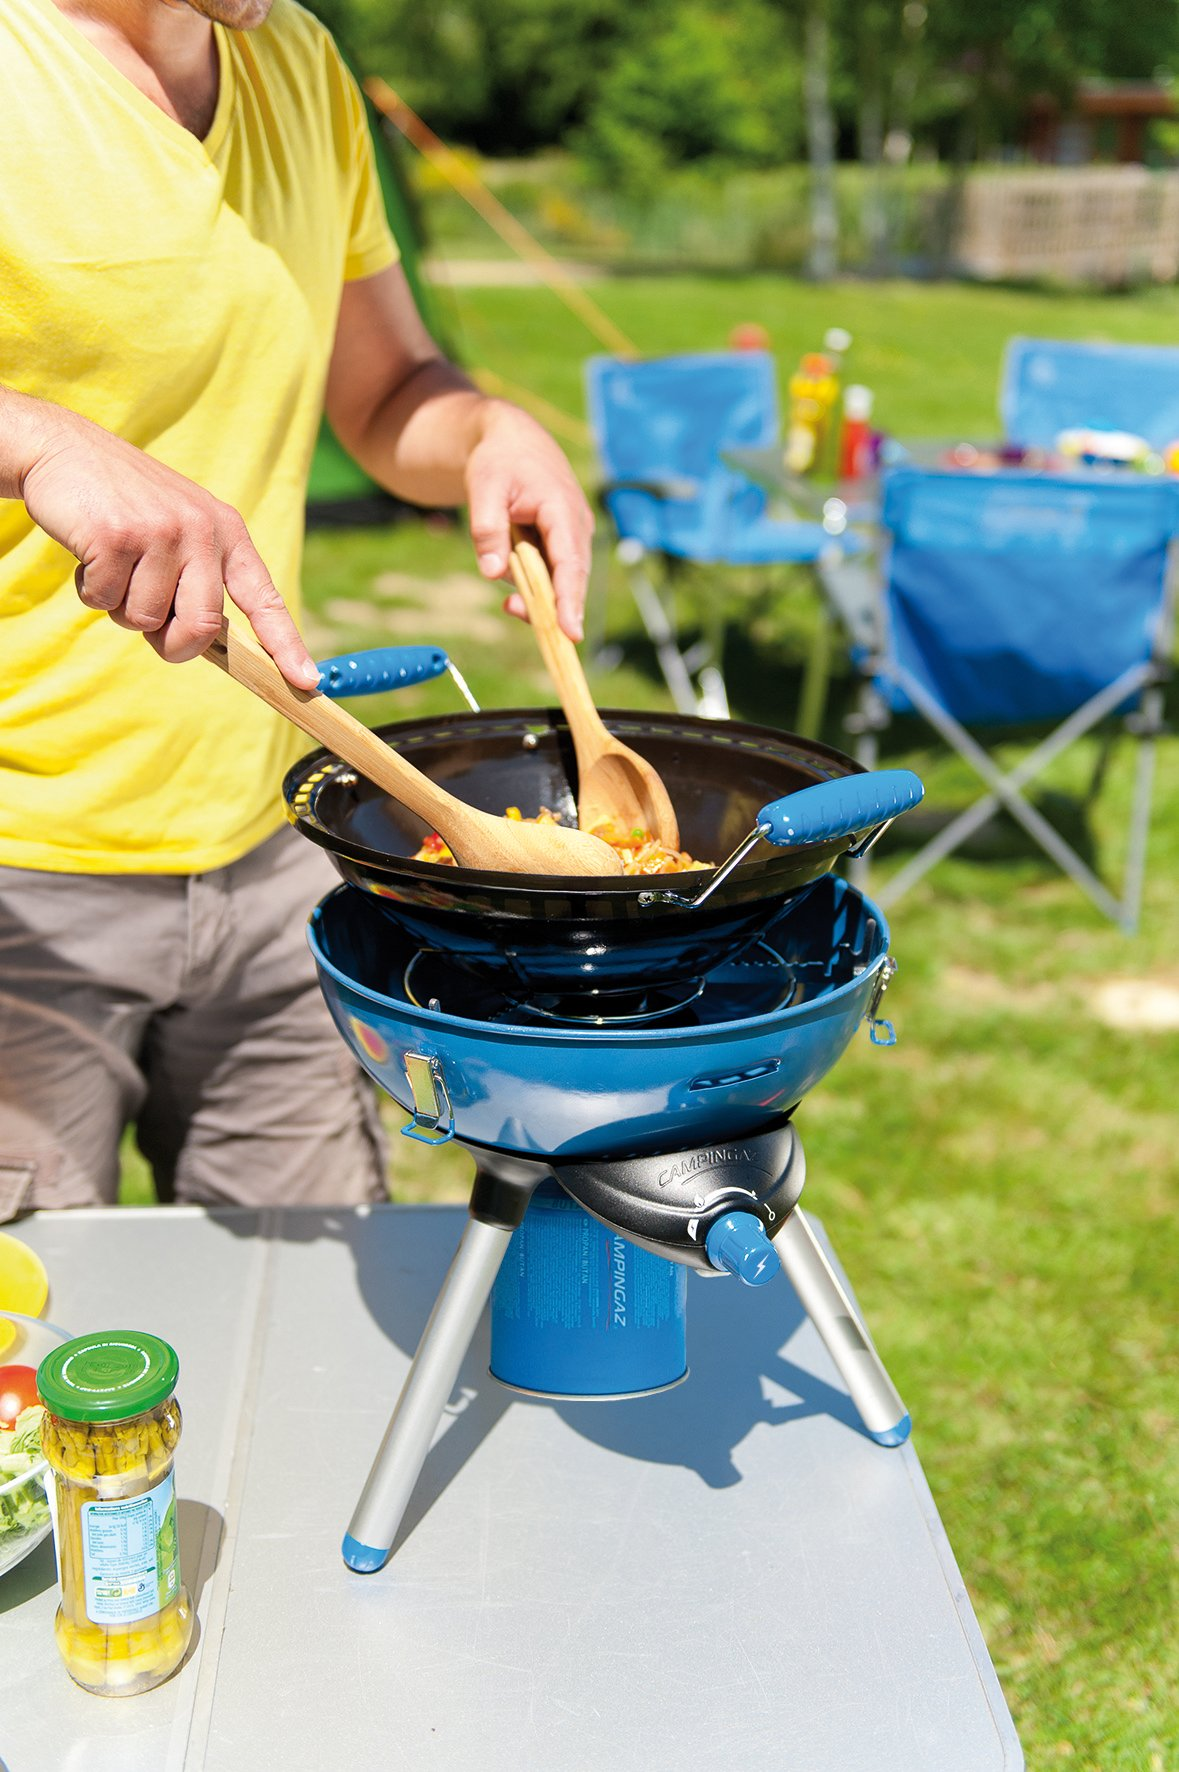 Campingaz Party Grill 400 Camping Stove, All in One portable Camping BBQ, Outdoor Grill & Stove, Small Gas Barbecue 2.000 Watt, Runs on CV 470 Plus Gas Cartridge 4